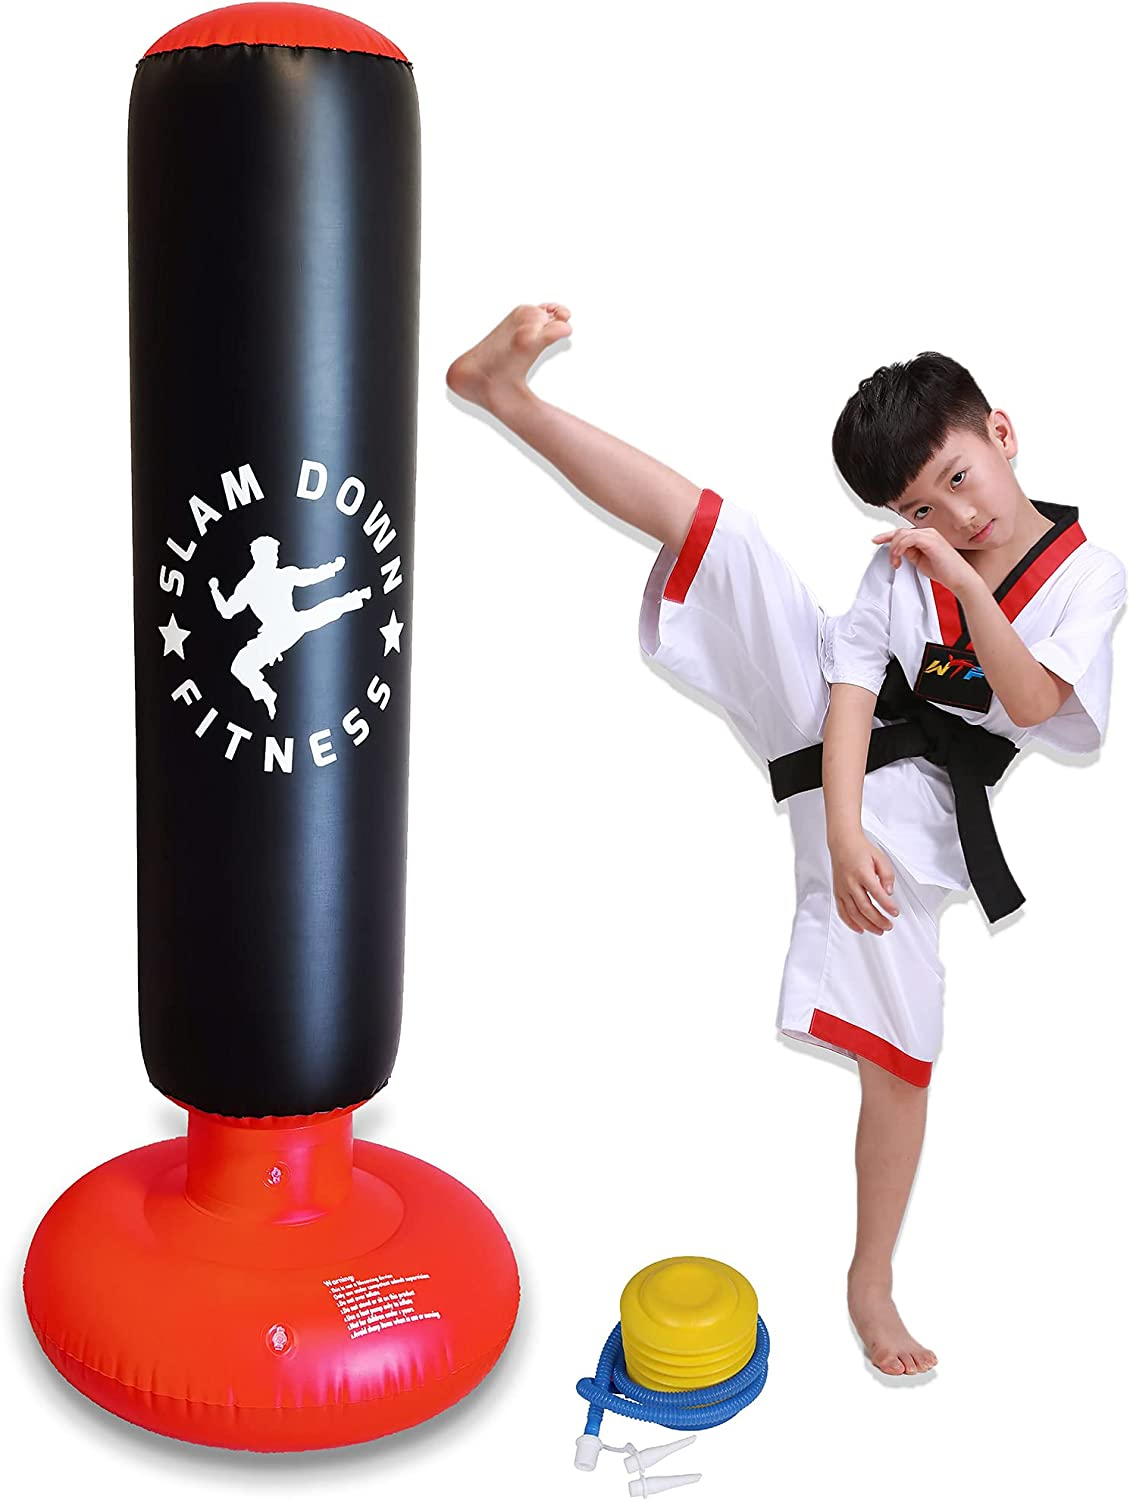 ExBePe Max 80% OFF Shipping included Thickened and Odorless Inflatable B Kids Bag Punching for